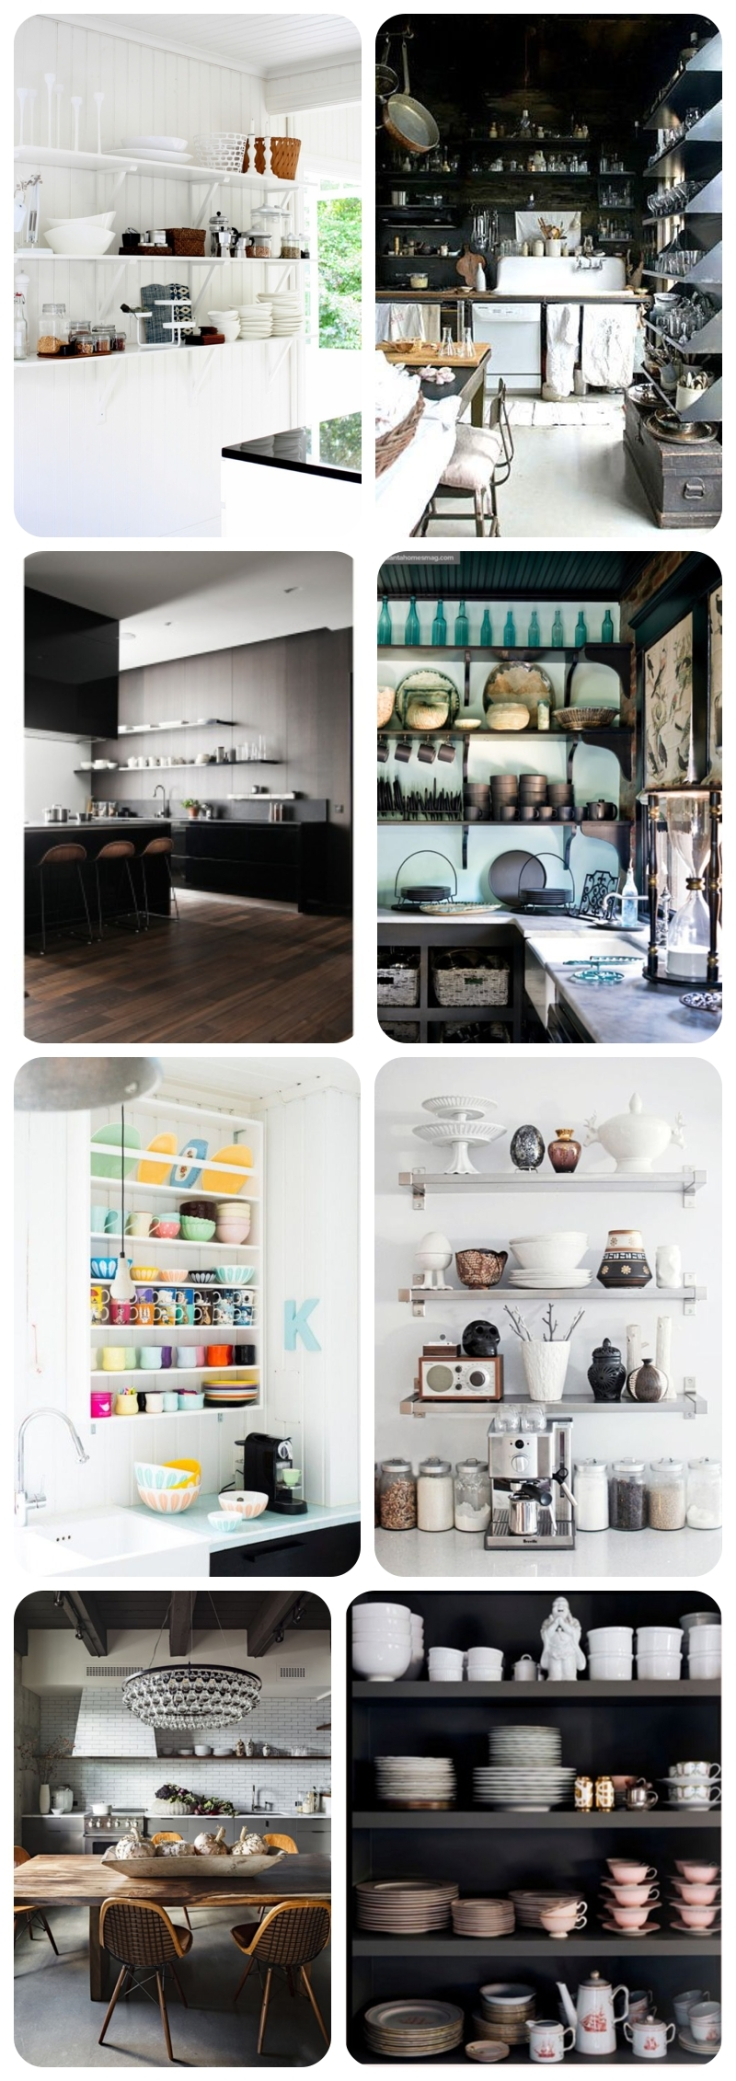 Kitchen Trends 2014, Open Shelving in kitchens